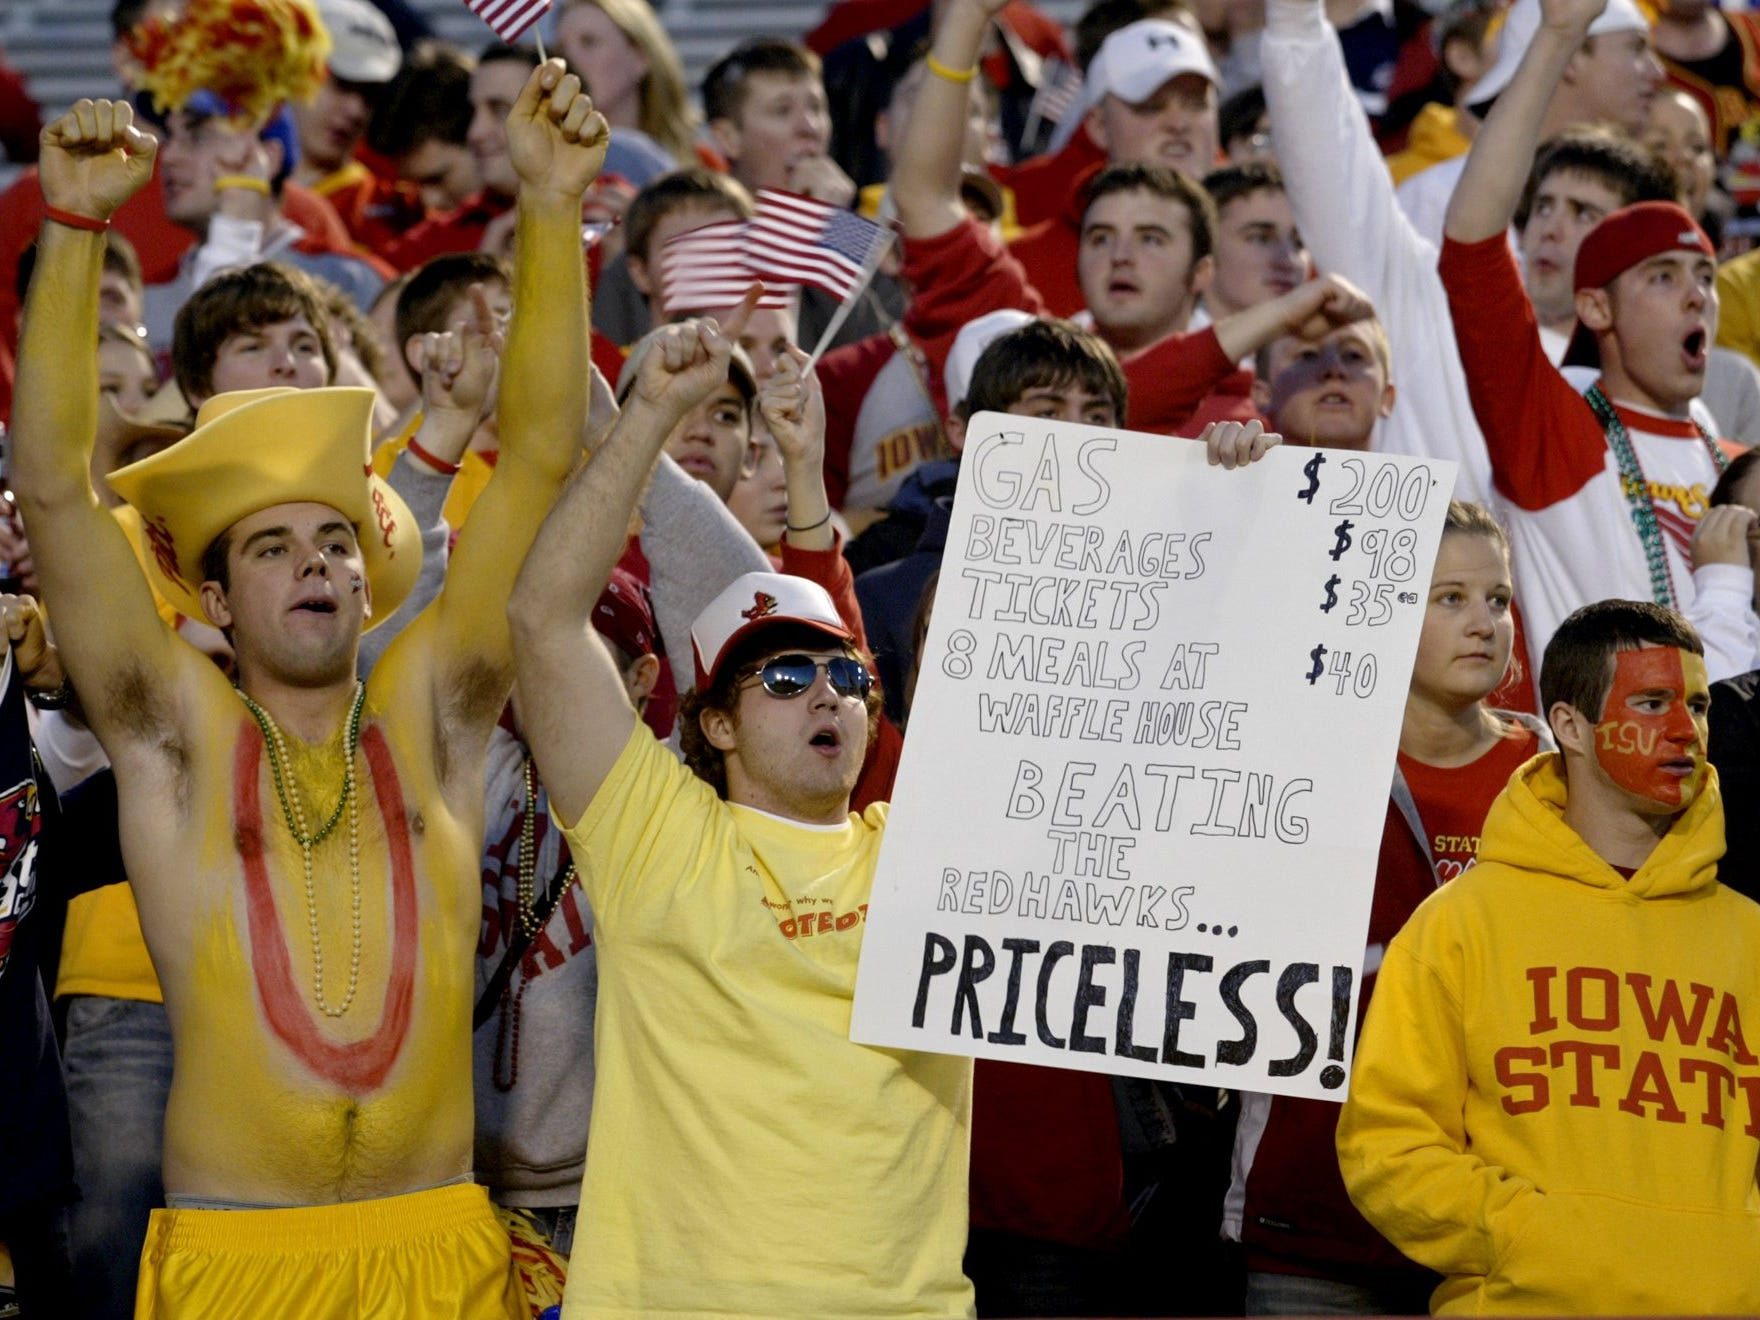 Iowa State University students Derick Tallman and Cory Hart, both of Ankeny, root on the Cyclones against Miami of Ohio during the 2004 Independence Bowl.